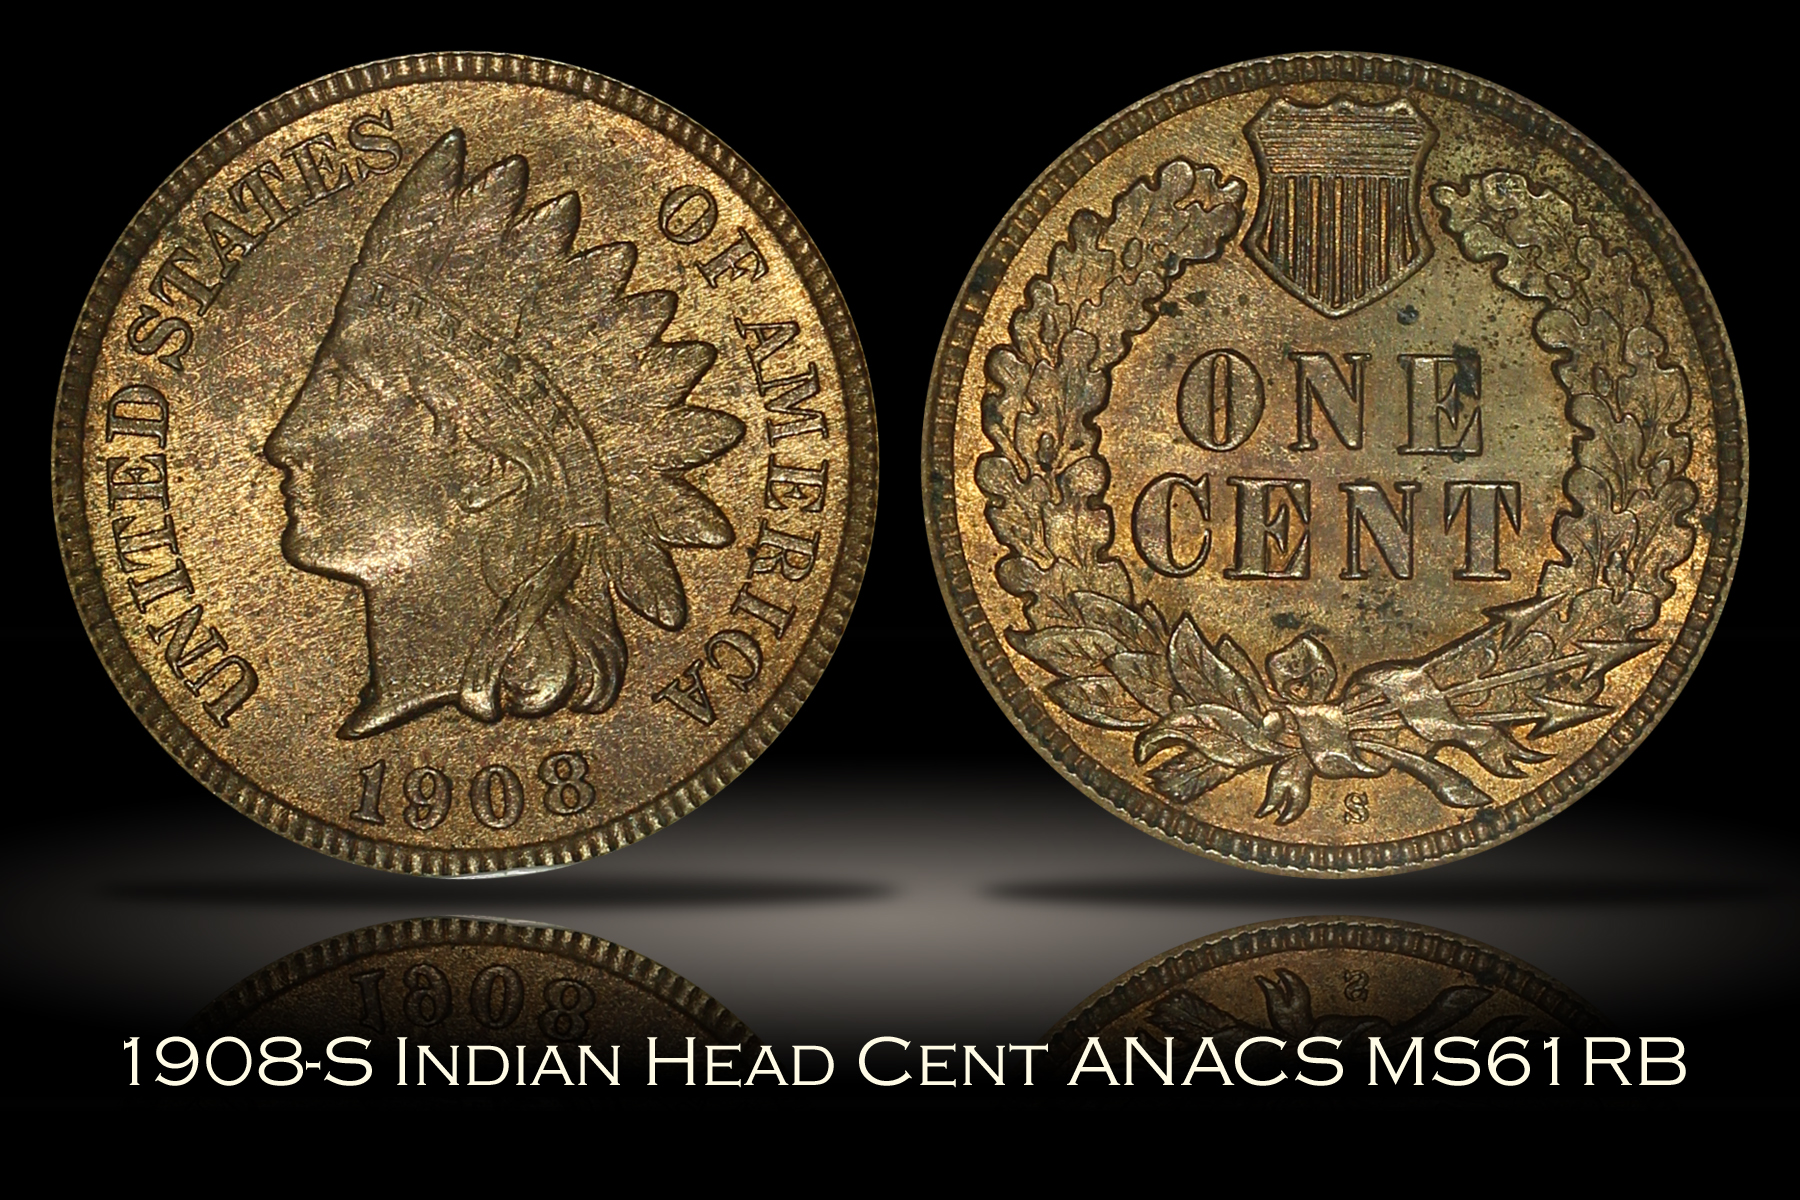 1908-S Indian Head Cent ANACS MS61RB